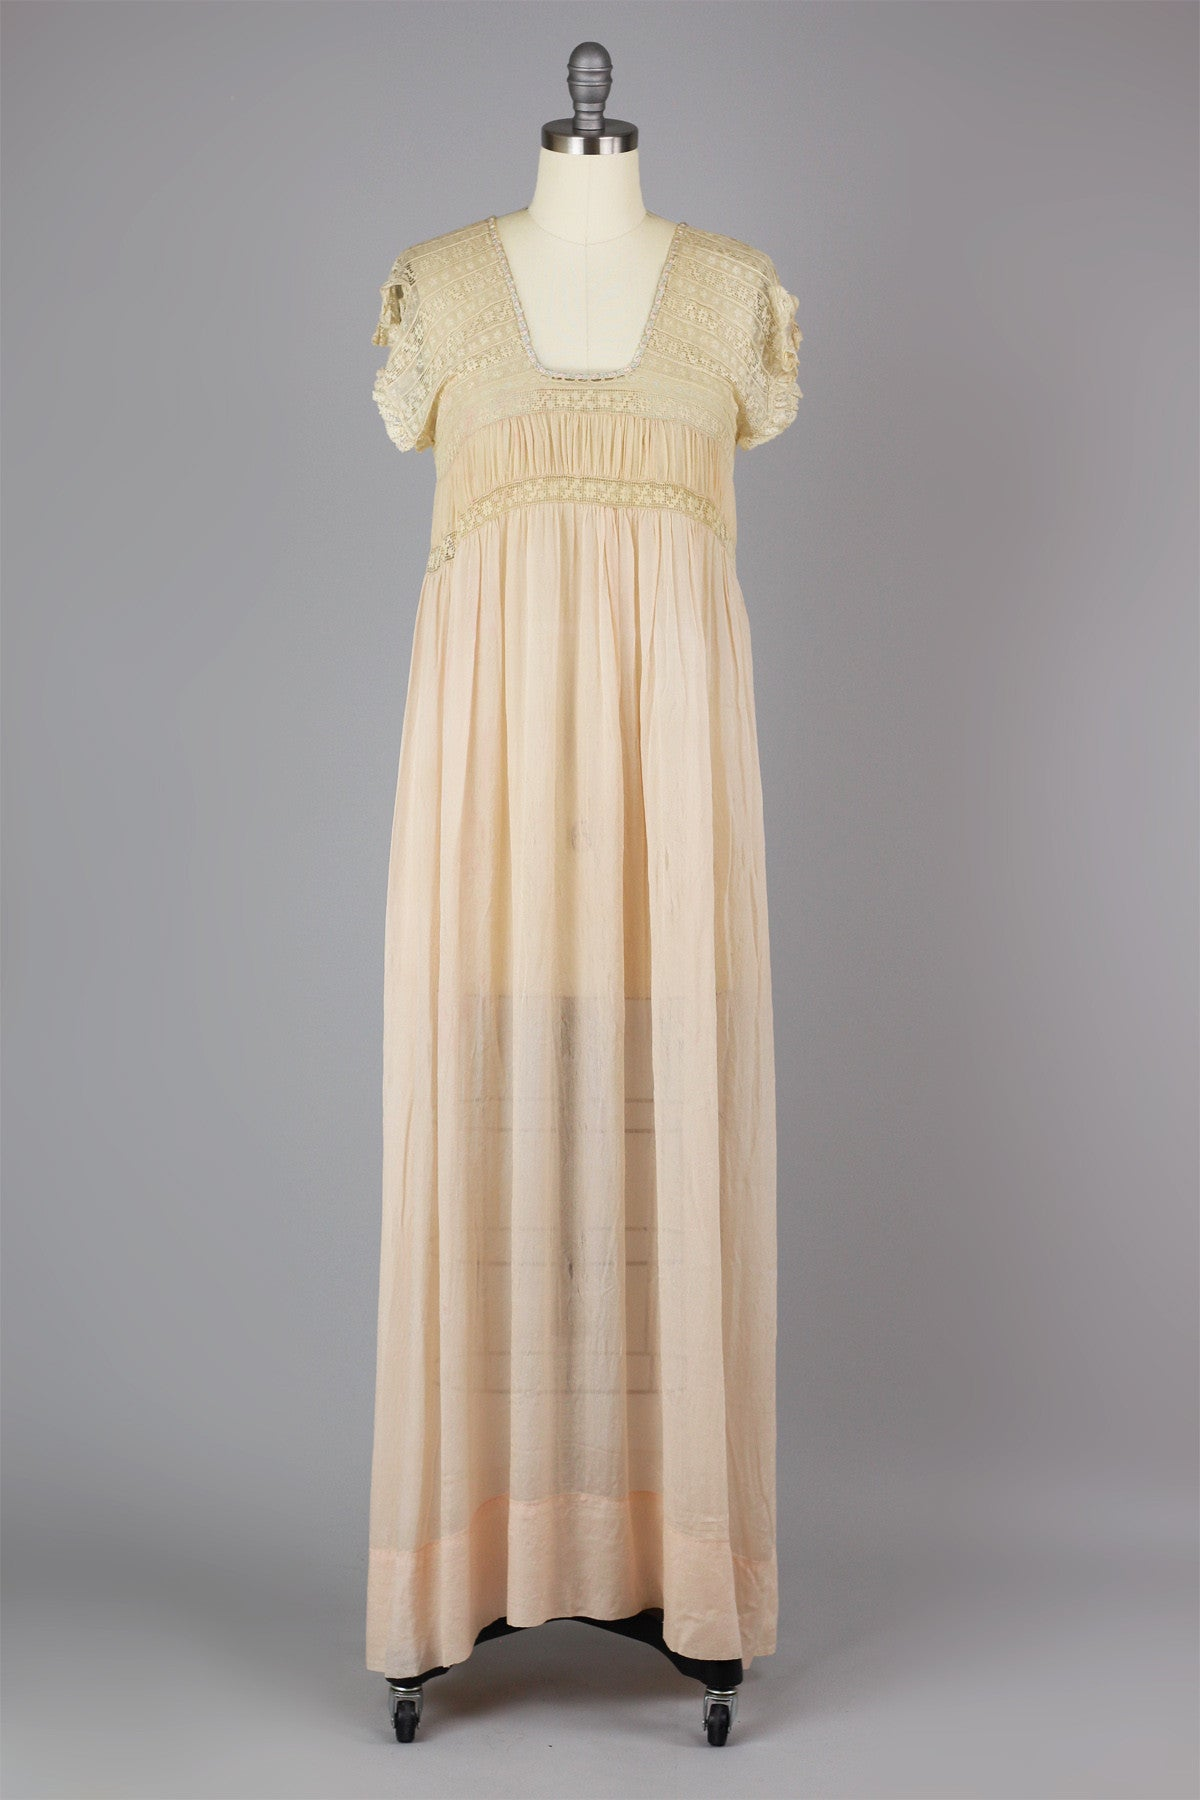 357aa70c35efd Rare 1920s French Grecian Style Crinkle Gauze Silk and Filet Lace Nightgown